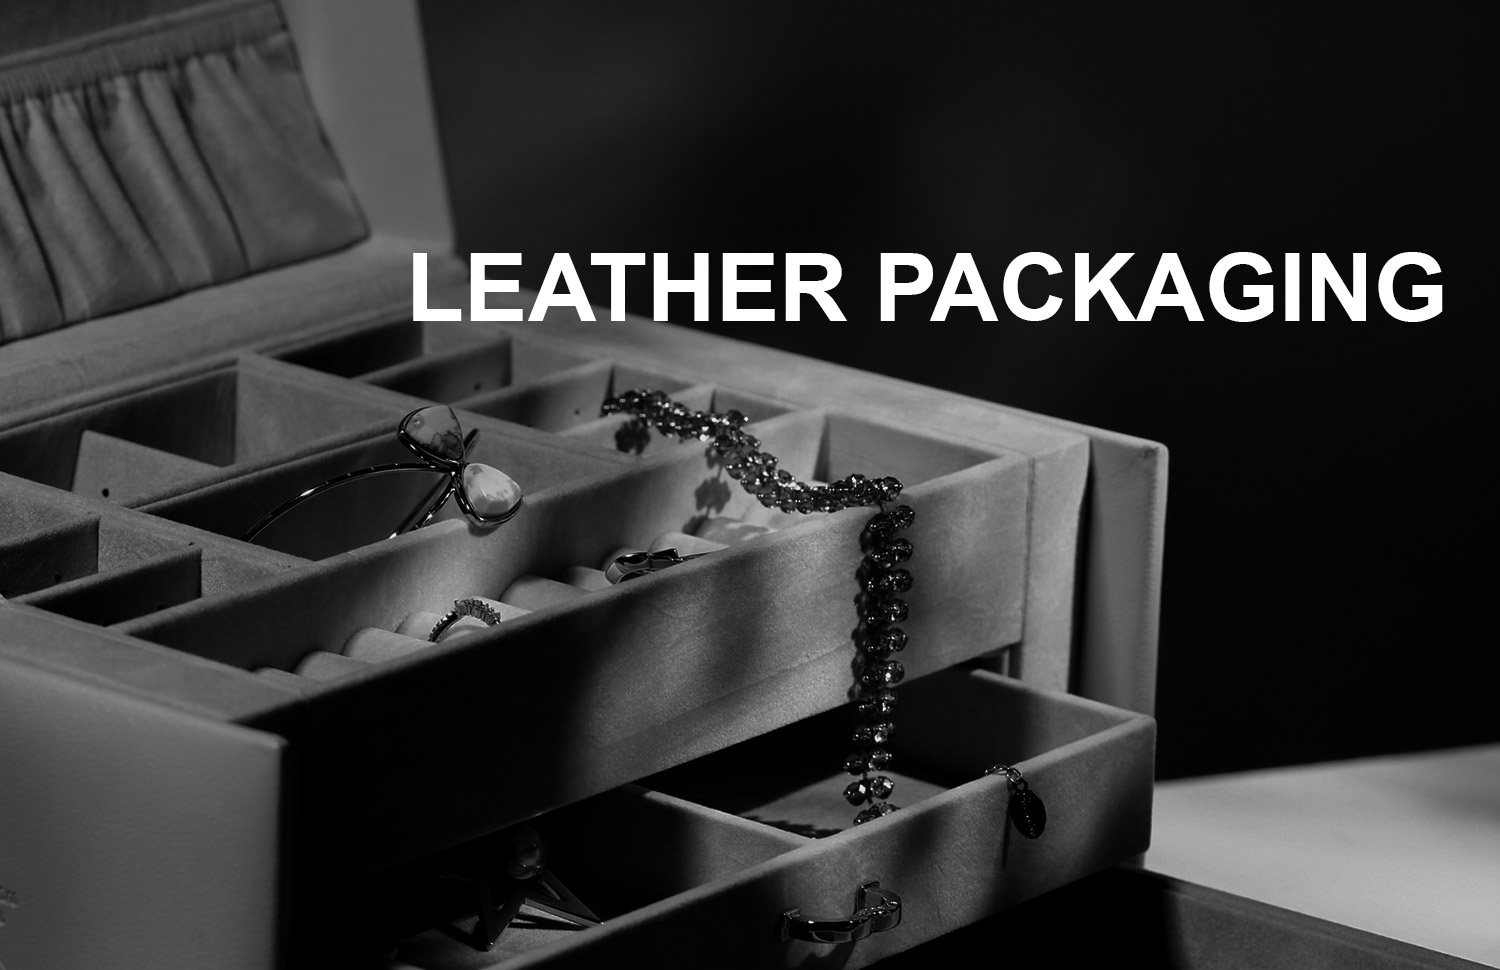 LEATHER PACKAGING